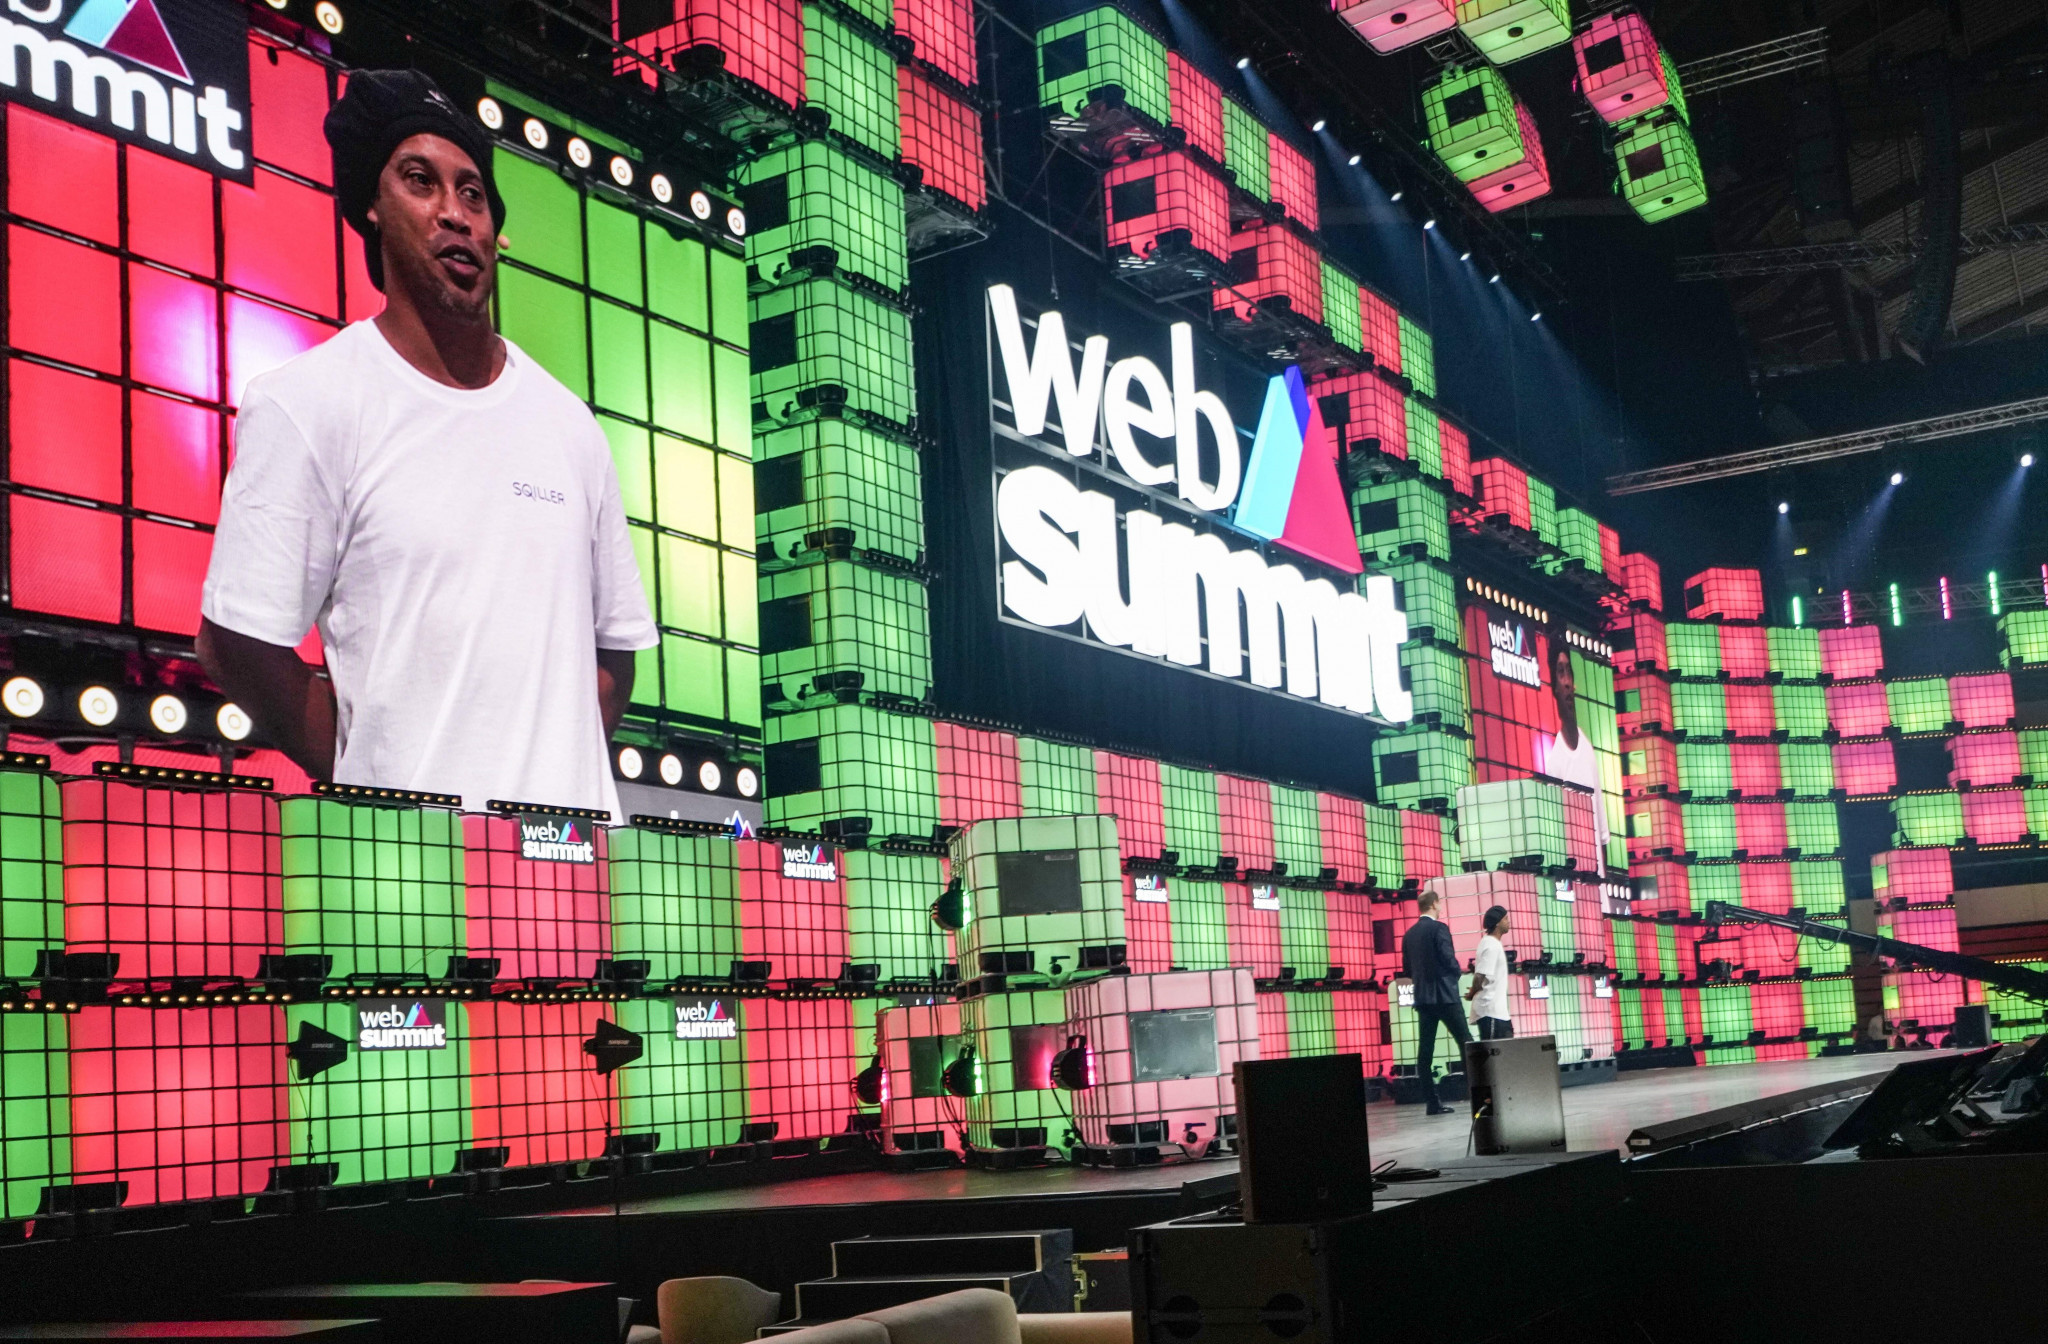 Ronaldinho showcases International Teqball Federation interactive app SQILLER